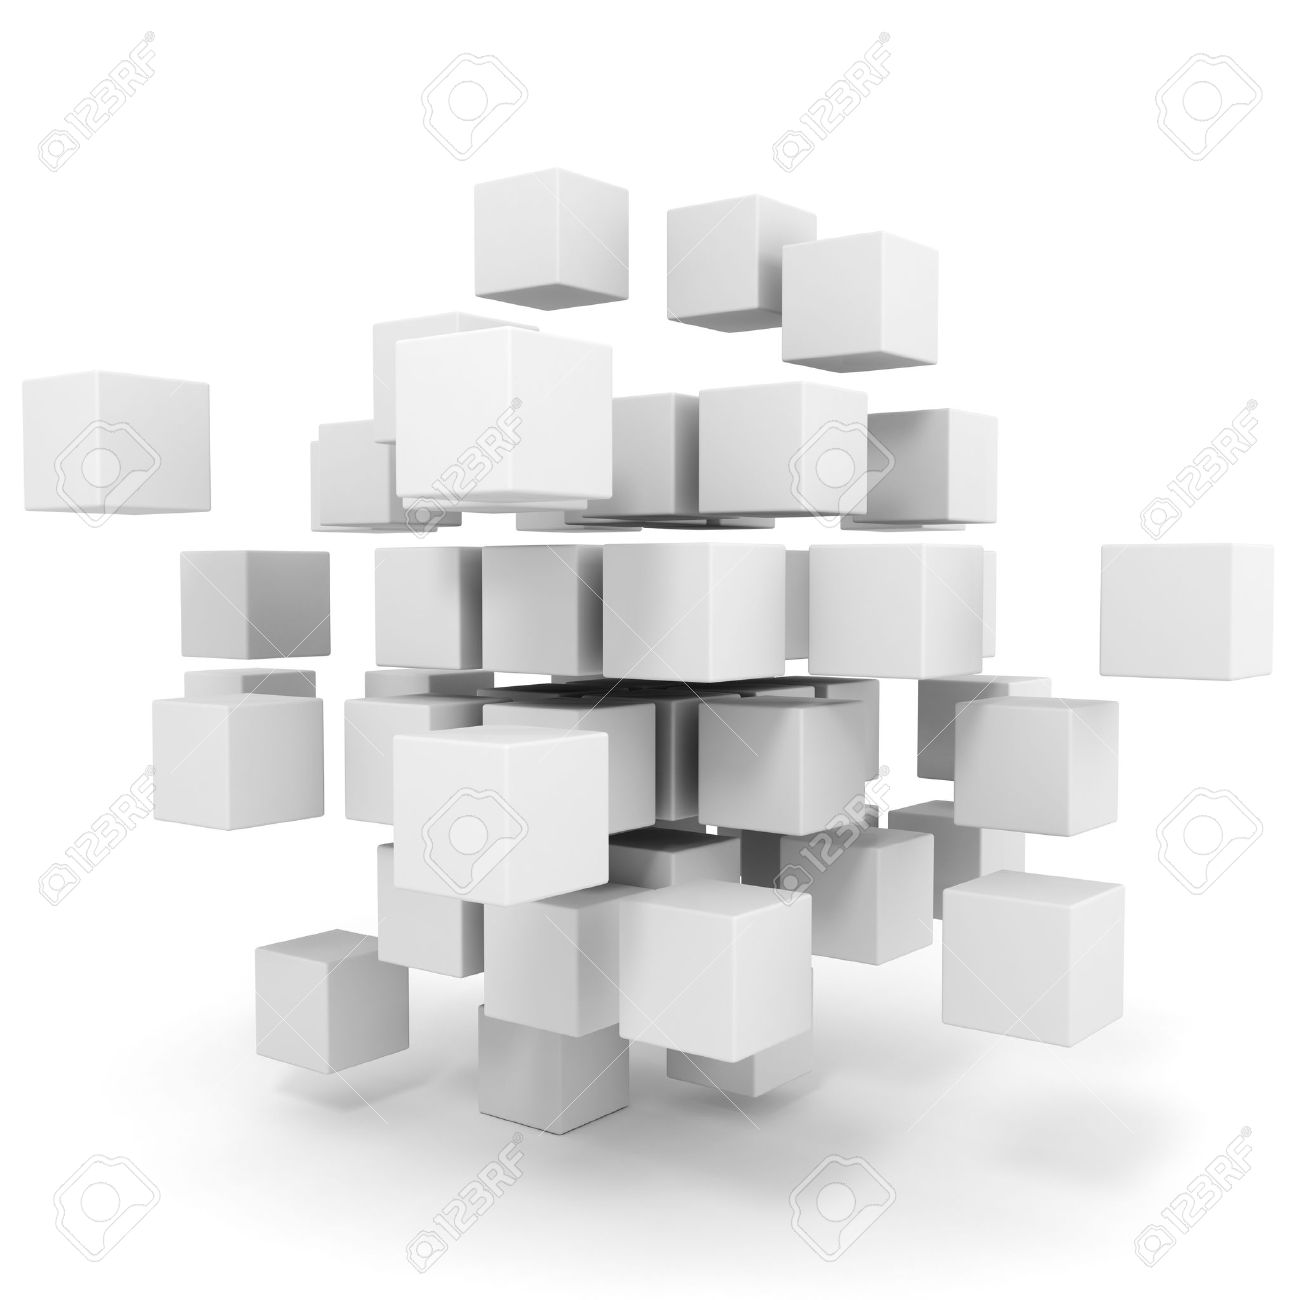 3d Cubes Puzzle On White Background Stock Photo, Picture And ...